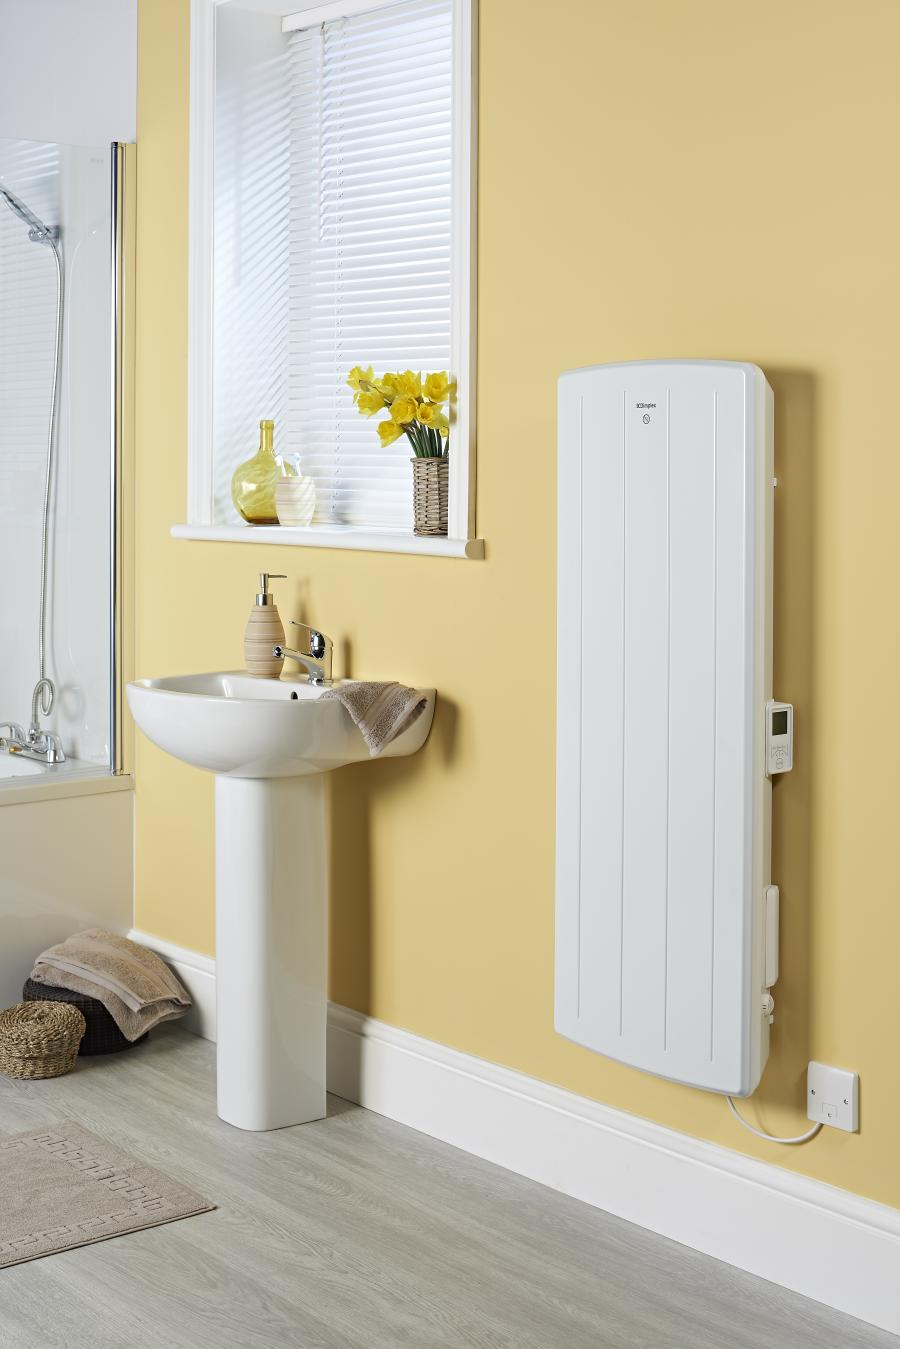 How to install 3 in 1 bathroom heater